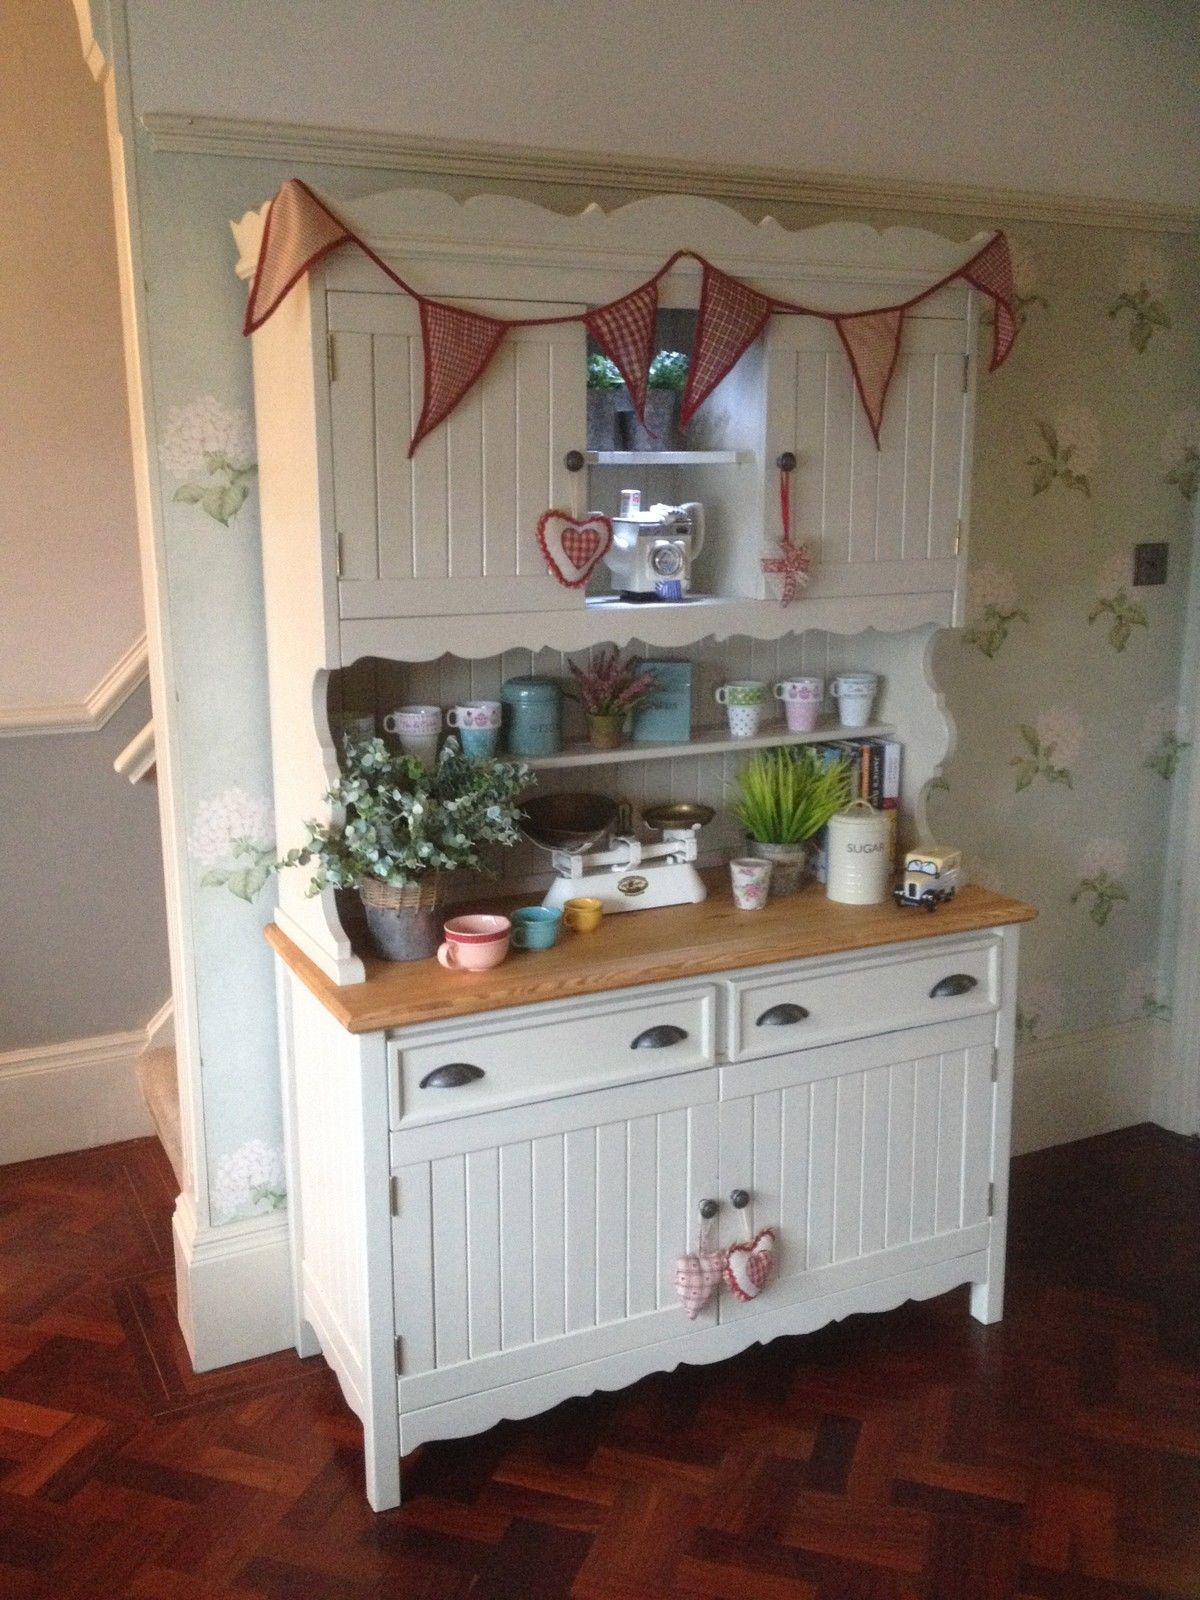 French Country Kitchen Dresser charming french country cottage kitchen dresser large drawers f&b